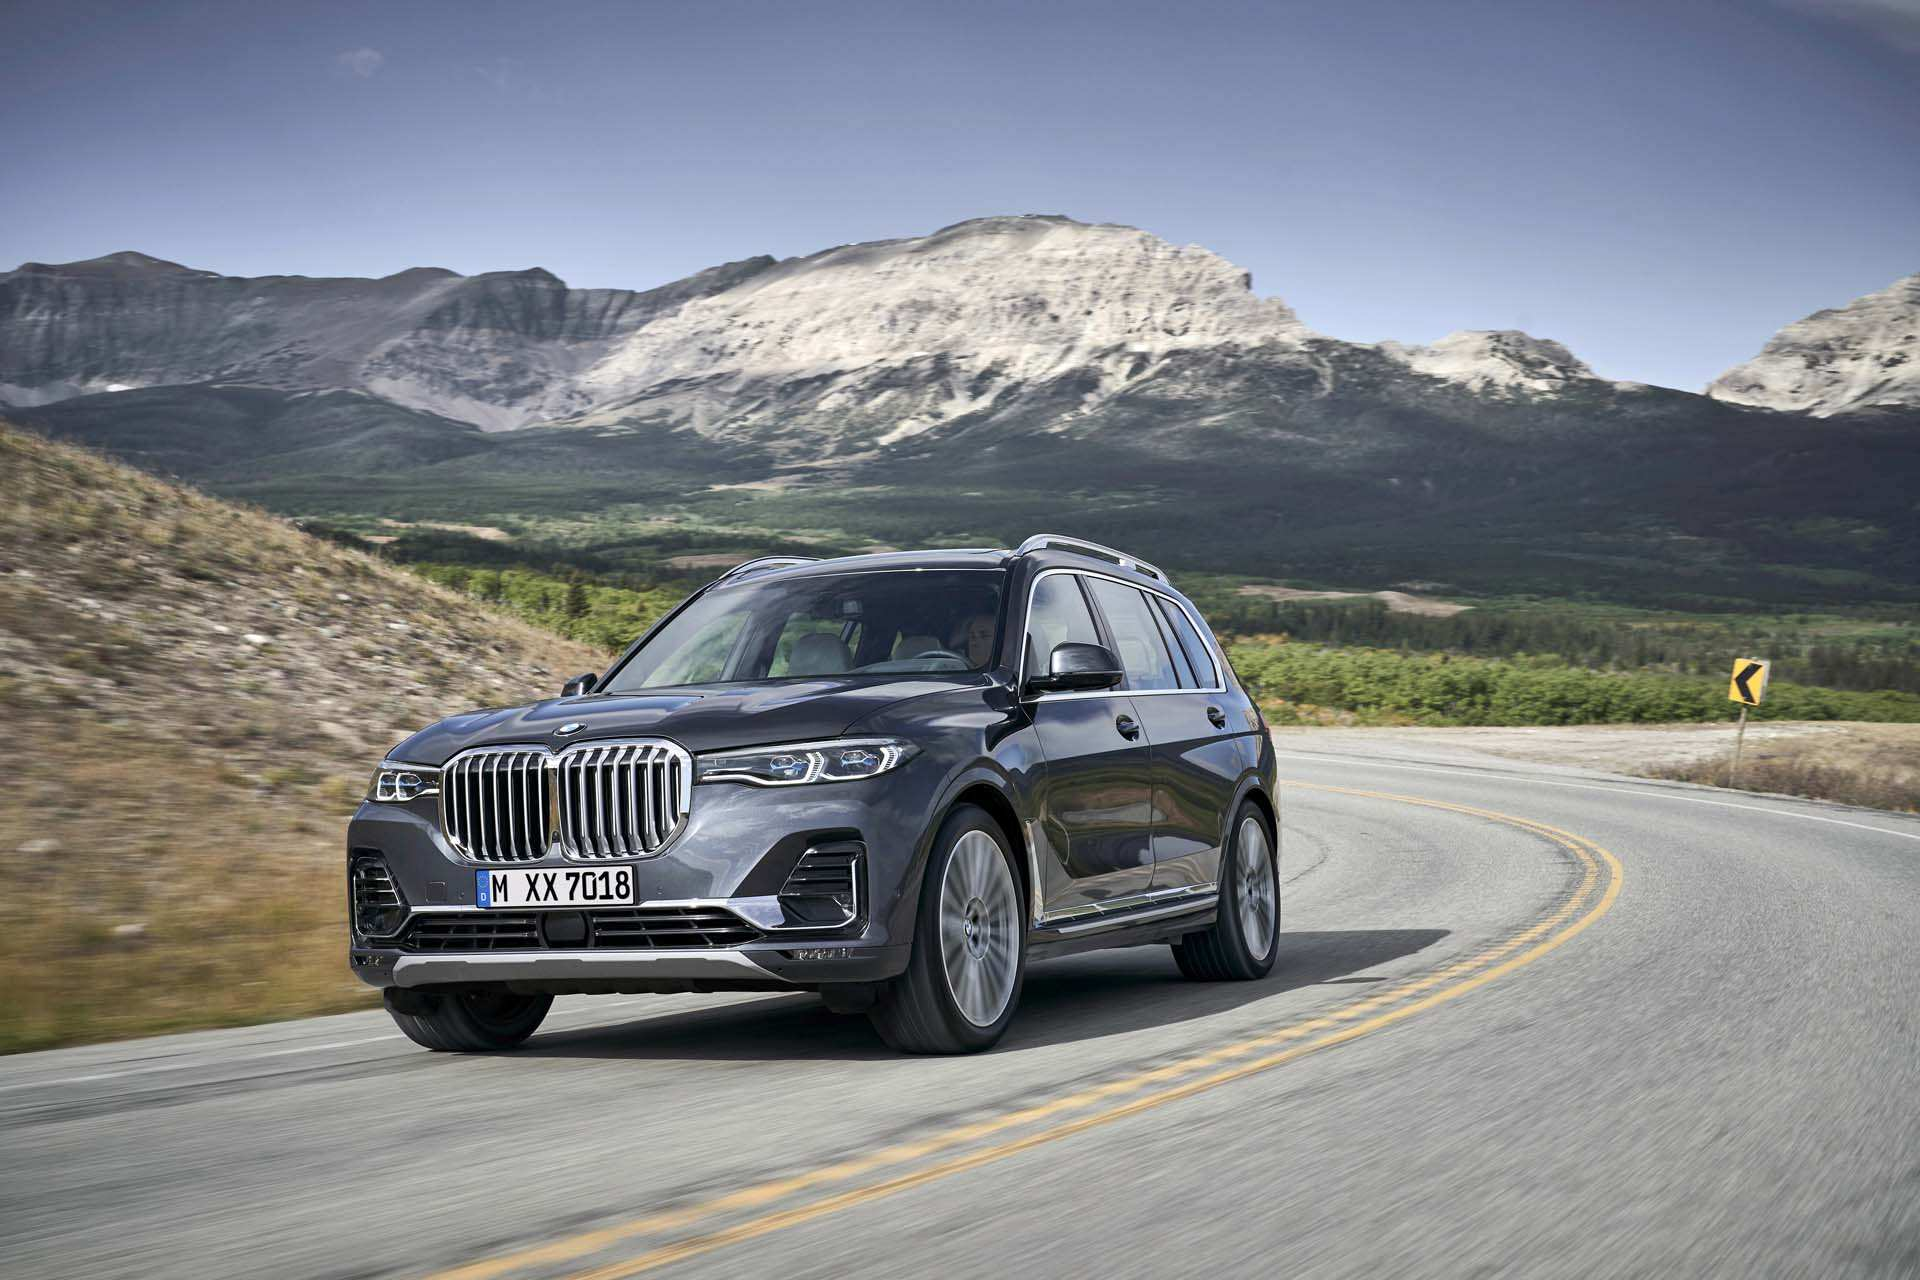 95 All New 2019 BMW X7 Suv Series Pricing